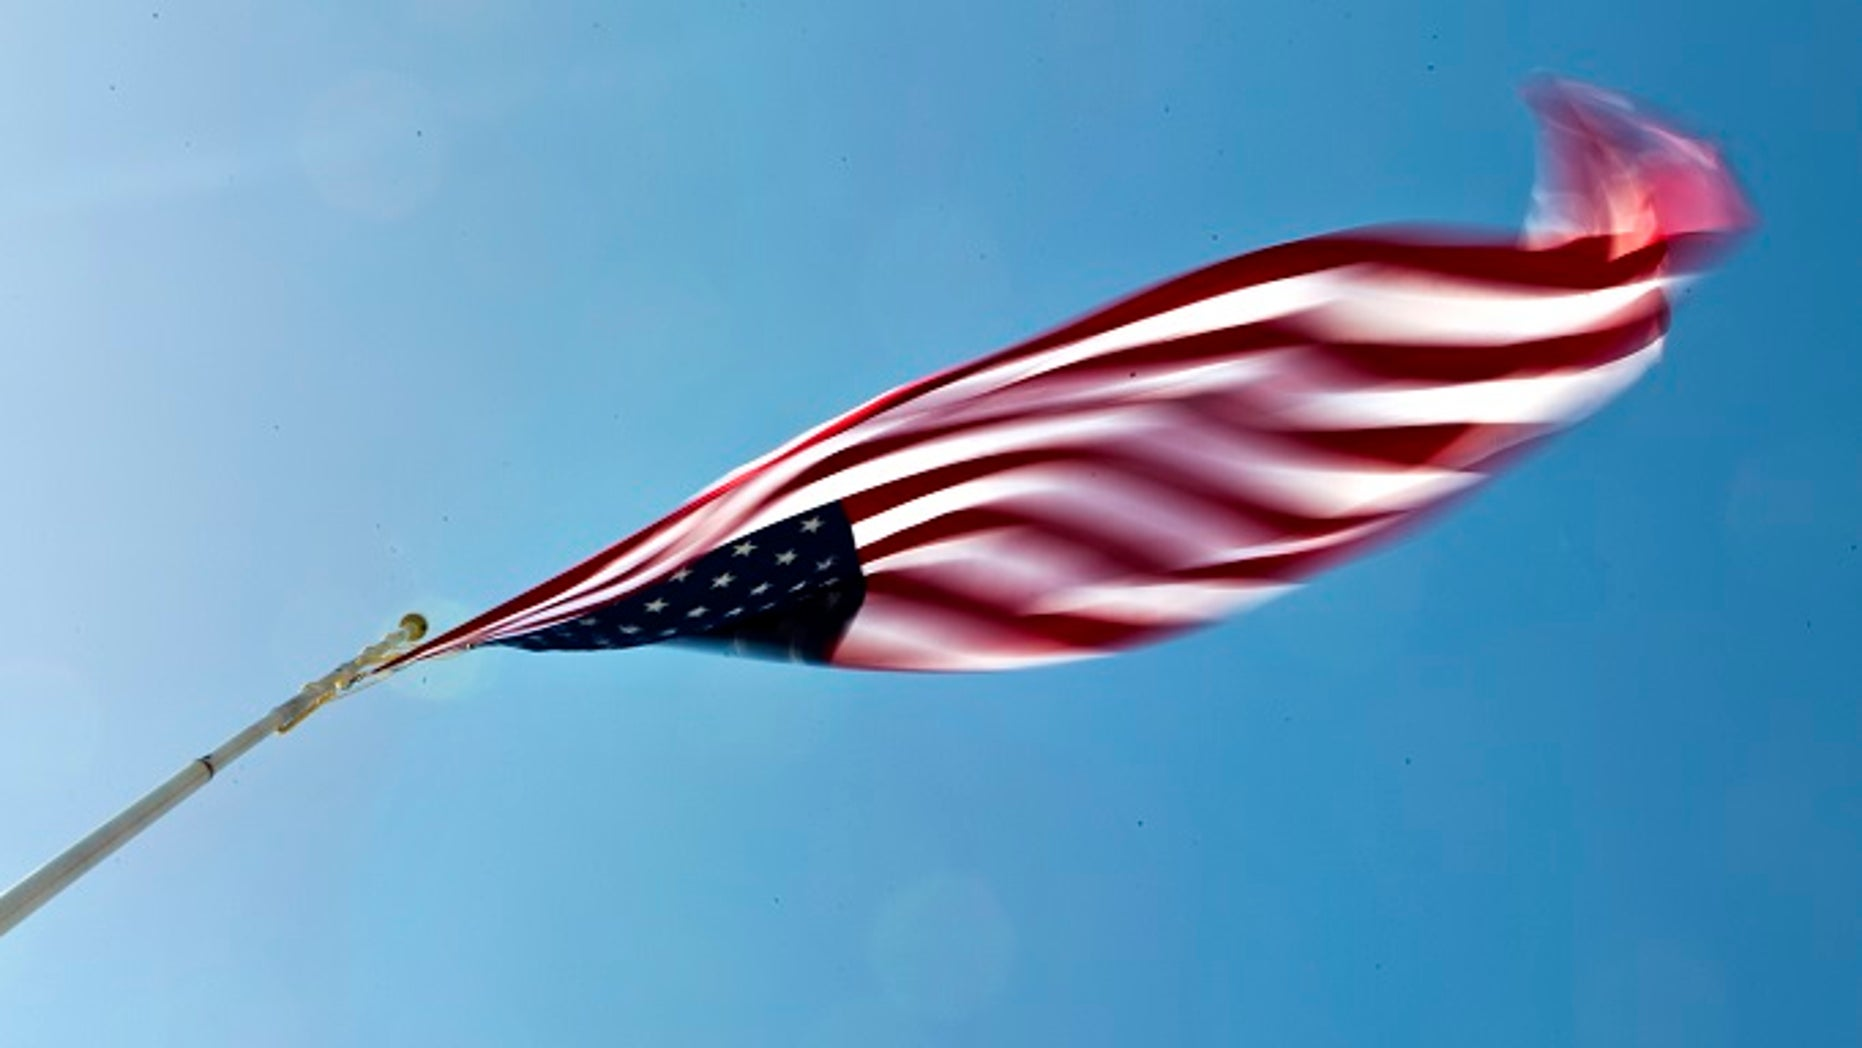 A large American flag blows wildly in the wind at the Terrible Herbst station in the Las Vegas area are predicted to go as high as 50 mph on Tuesday, April, 14, 2015.(L.E. Baskow/Las Vegas Sun via AP)